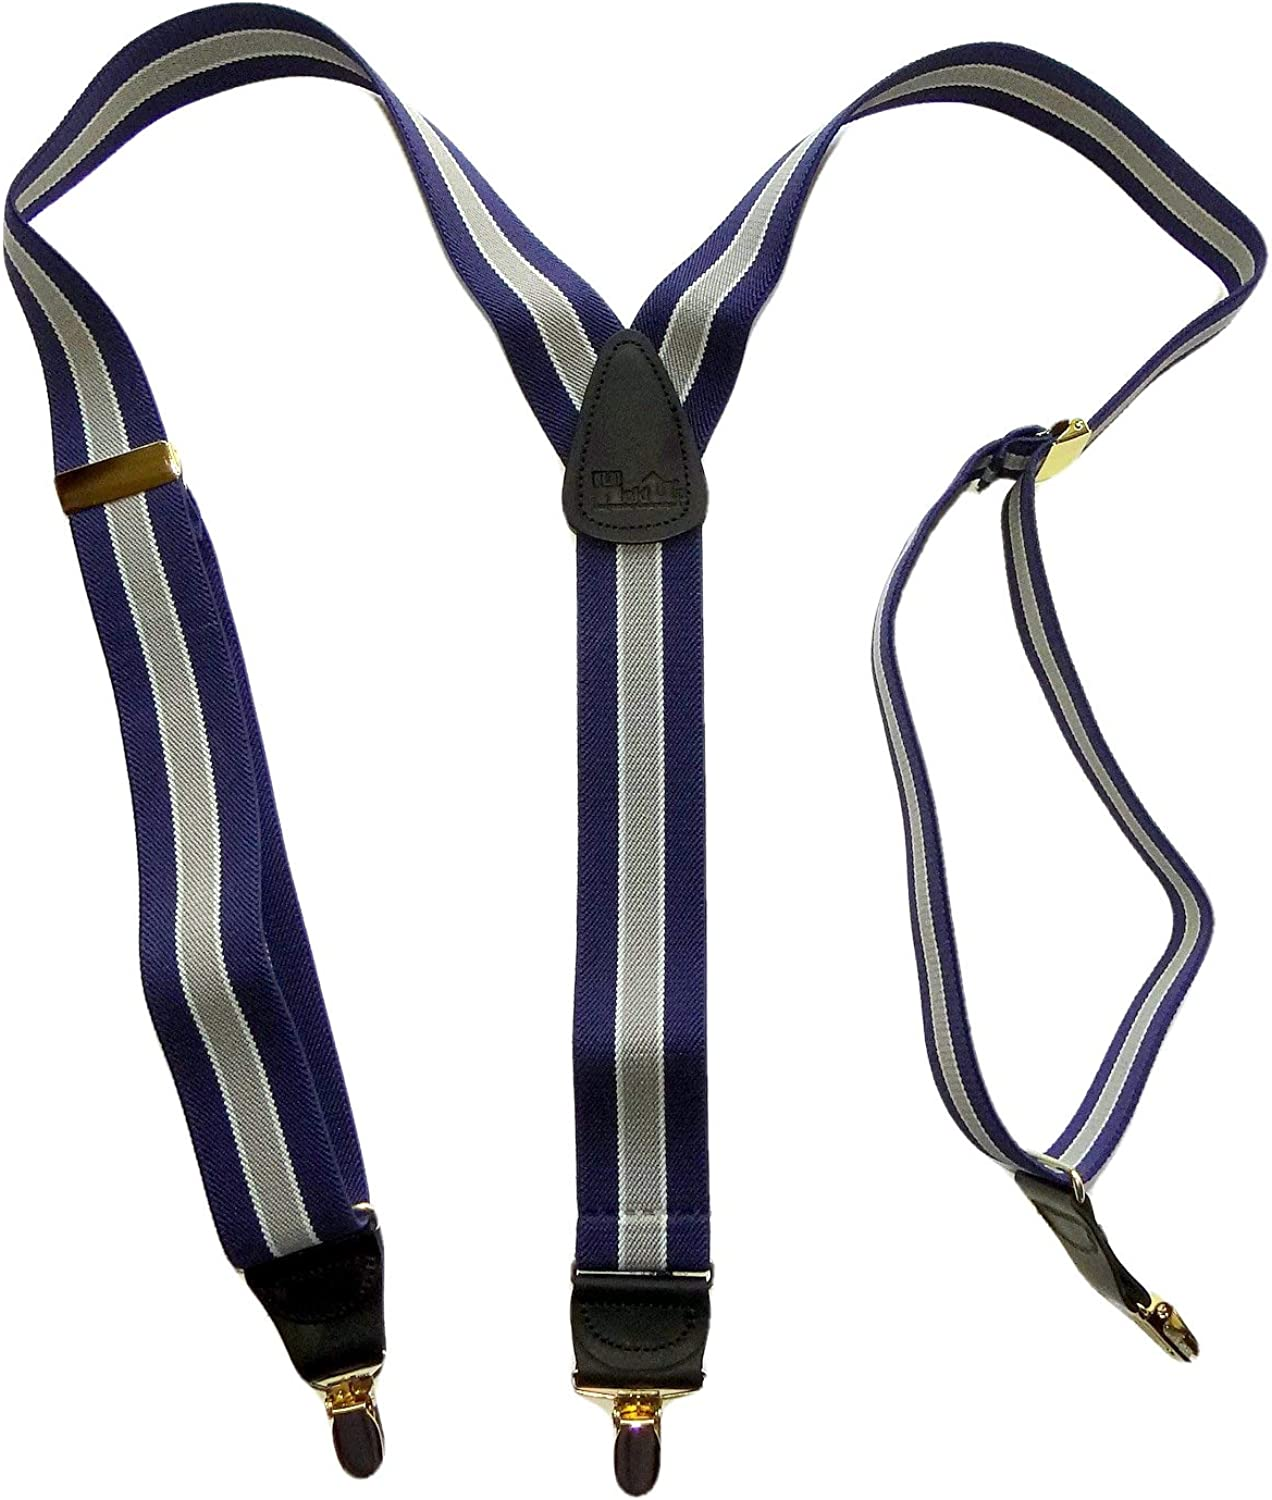 Holdup Brand Navy & Gray Striped Y-back style Suspenders with No-slip Gold-tone Clips